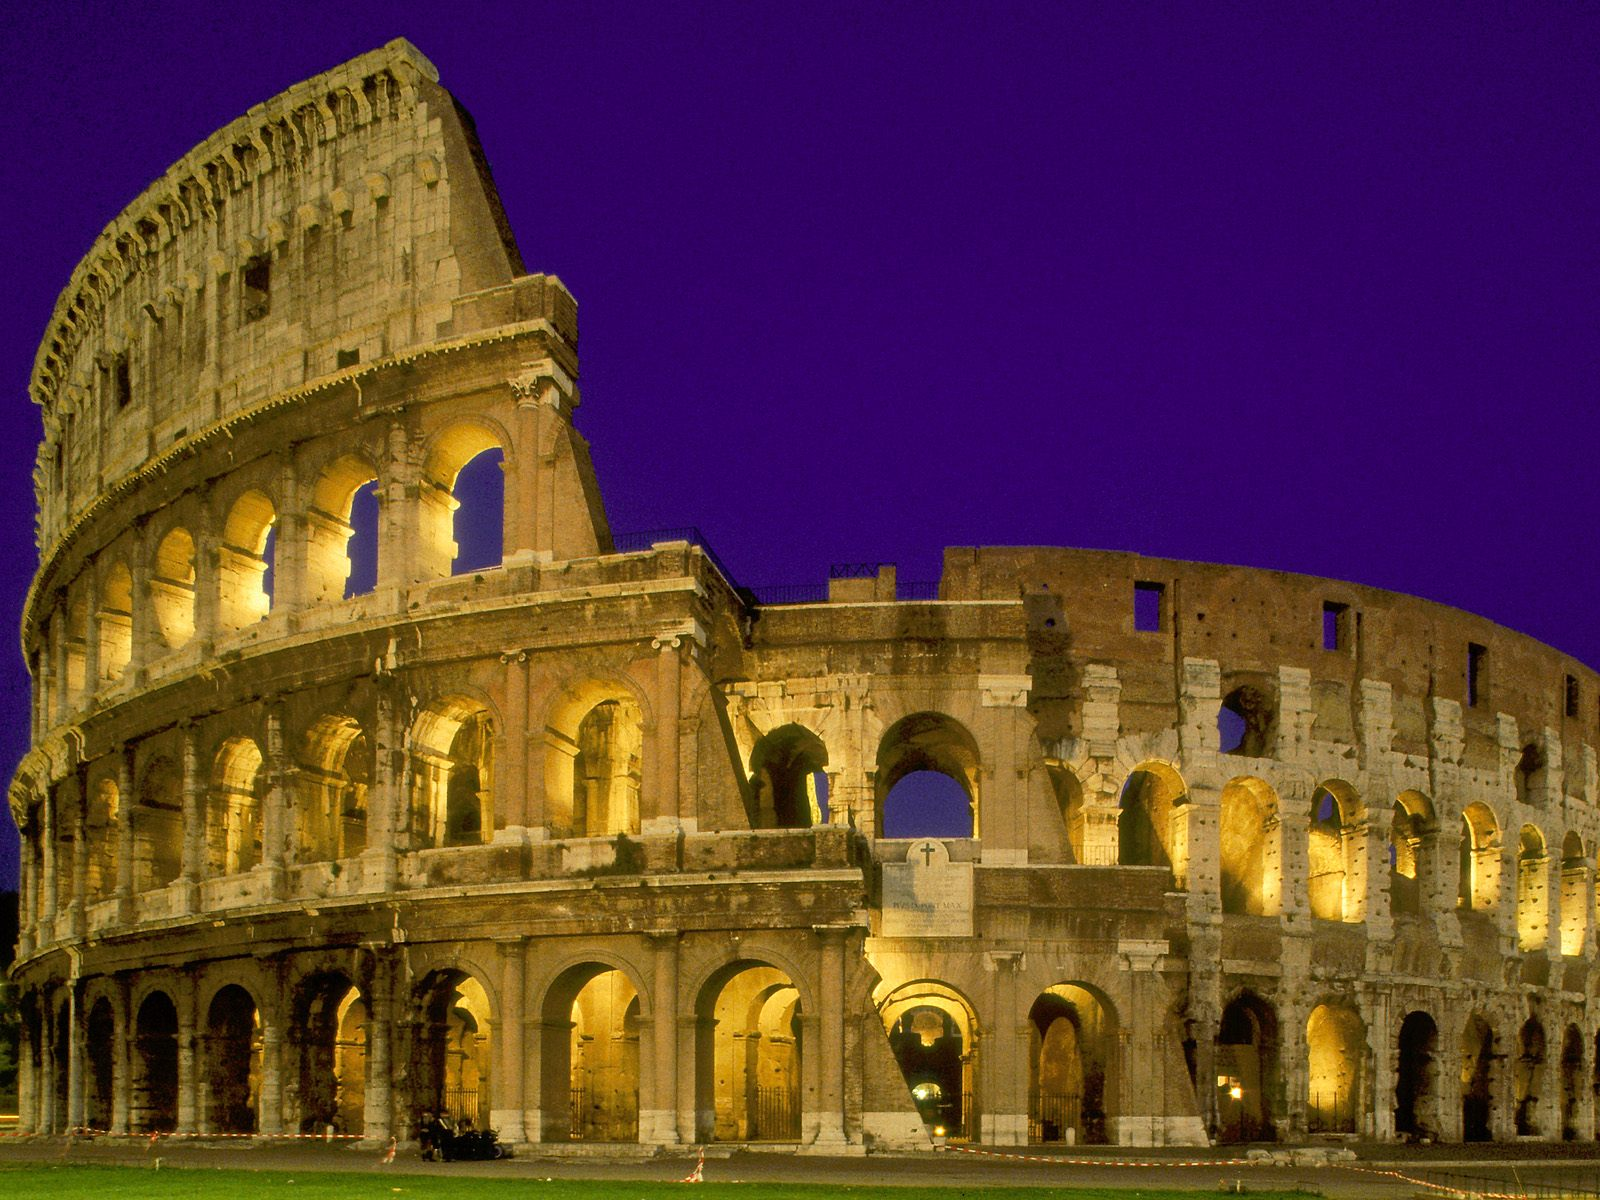 For The Unforgettable Events And Festivities In Rome For The Month Of ...: www.prweb.com/releases/2011/9/prweb8820315.htm